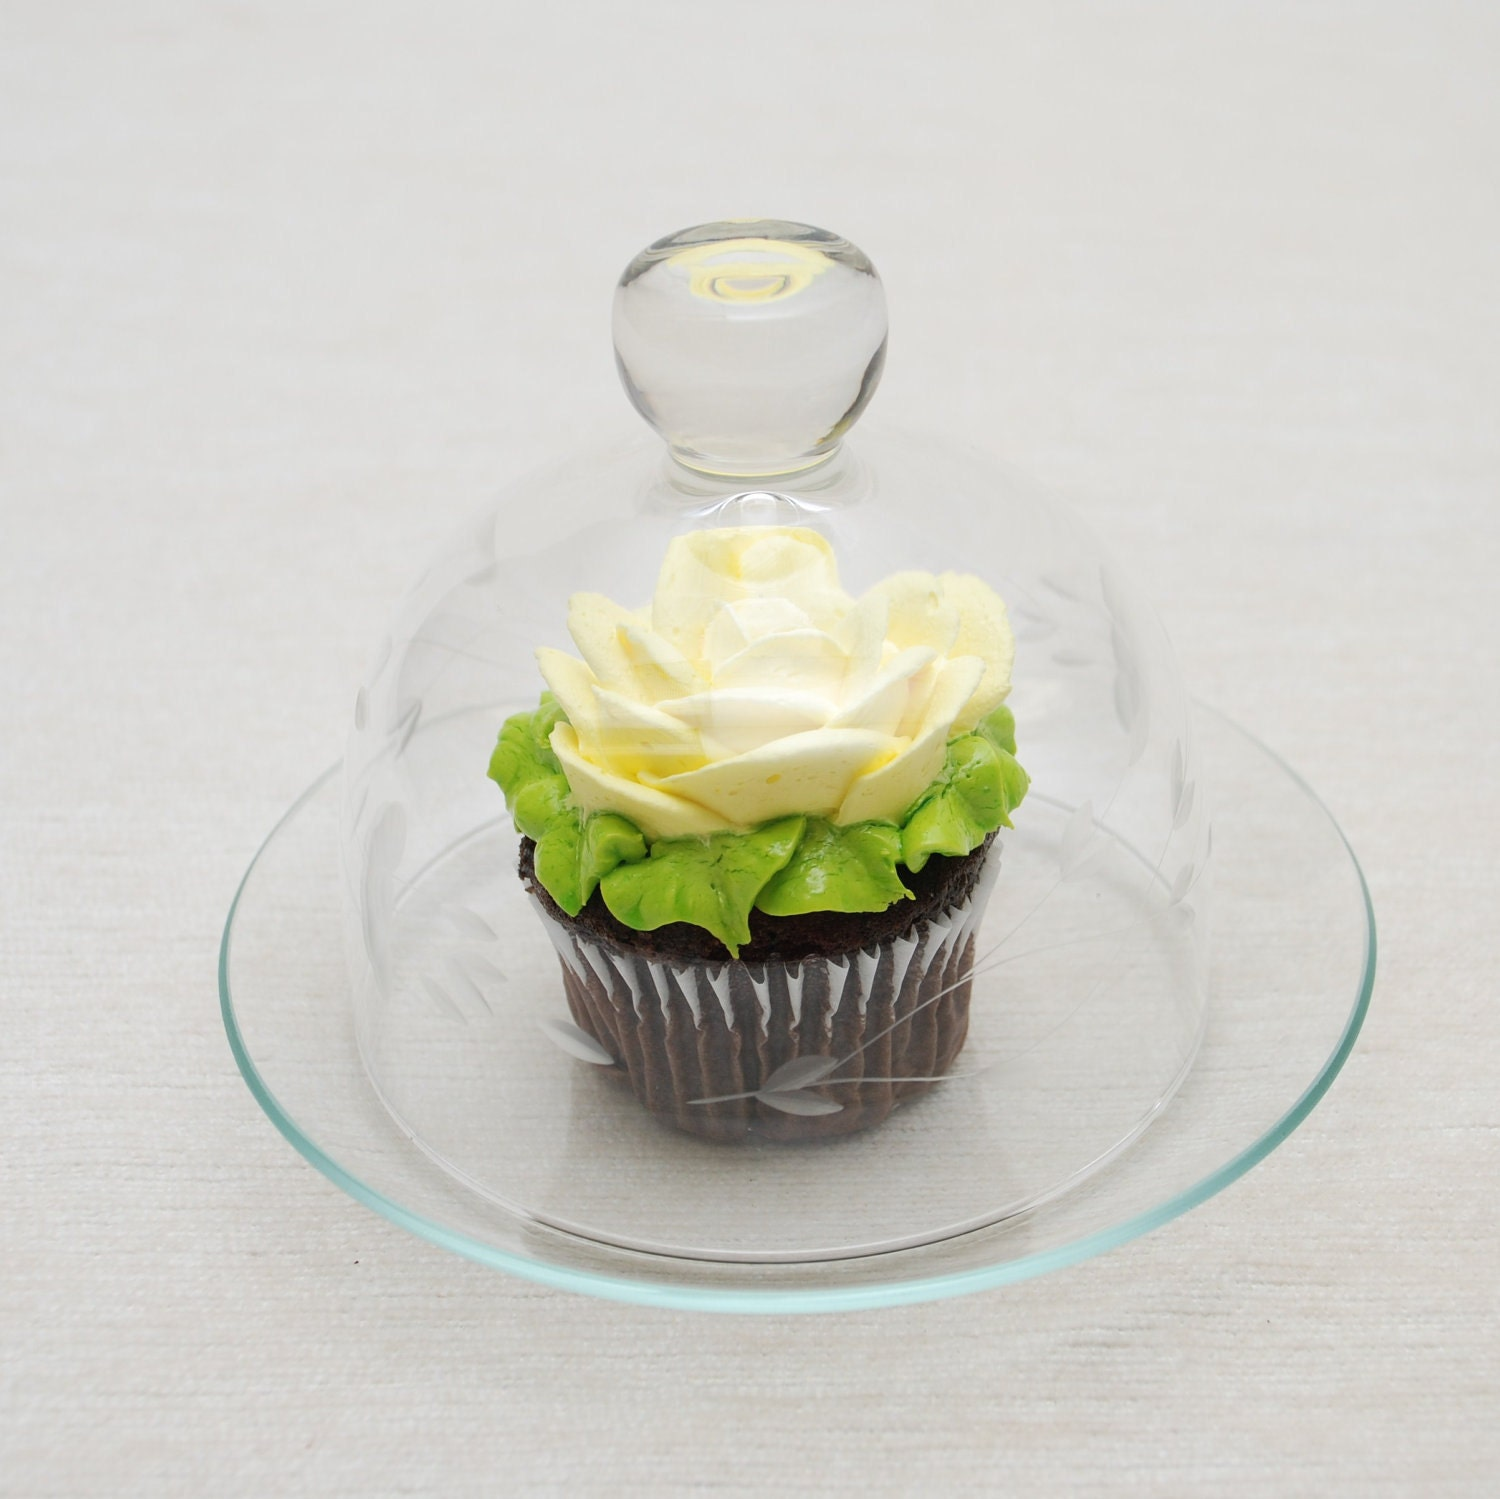 Adorable Cupcake Sized Cake Plate with Glass Dome